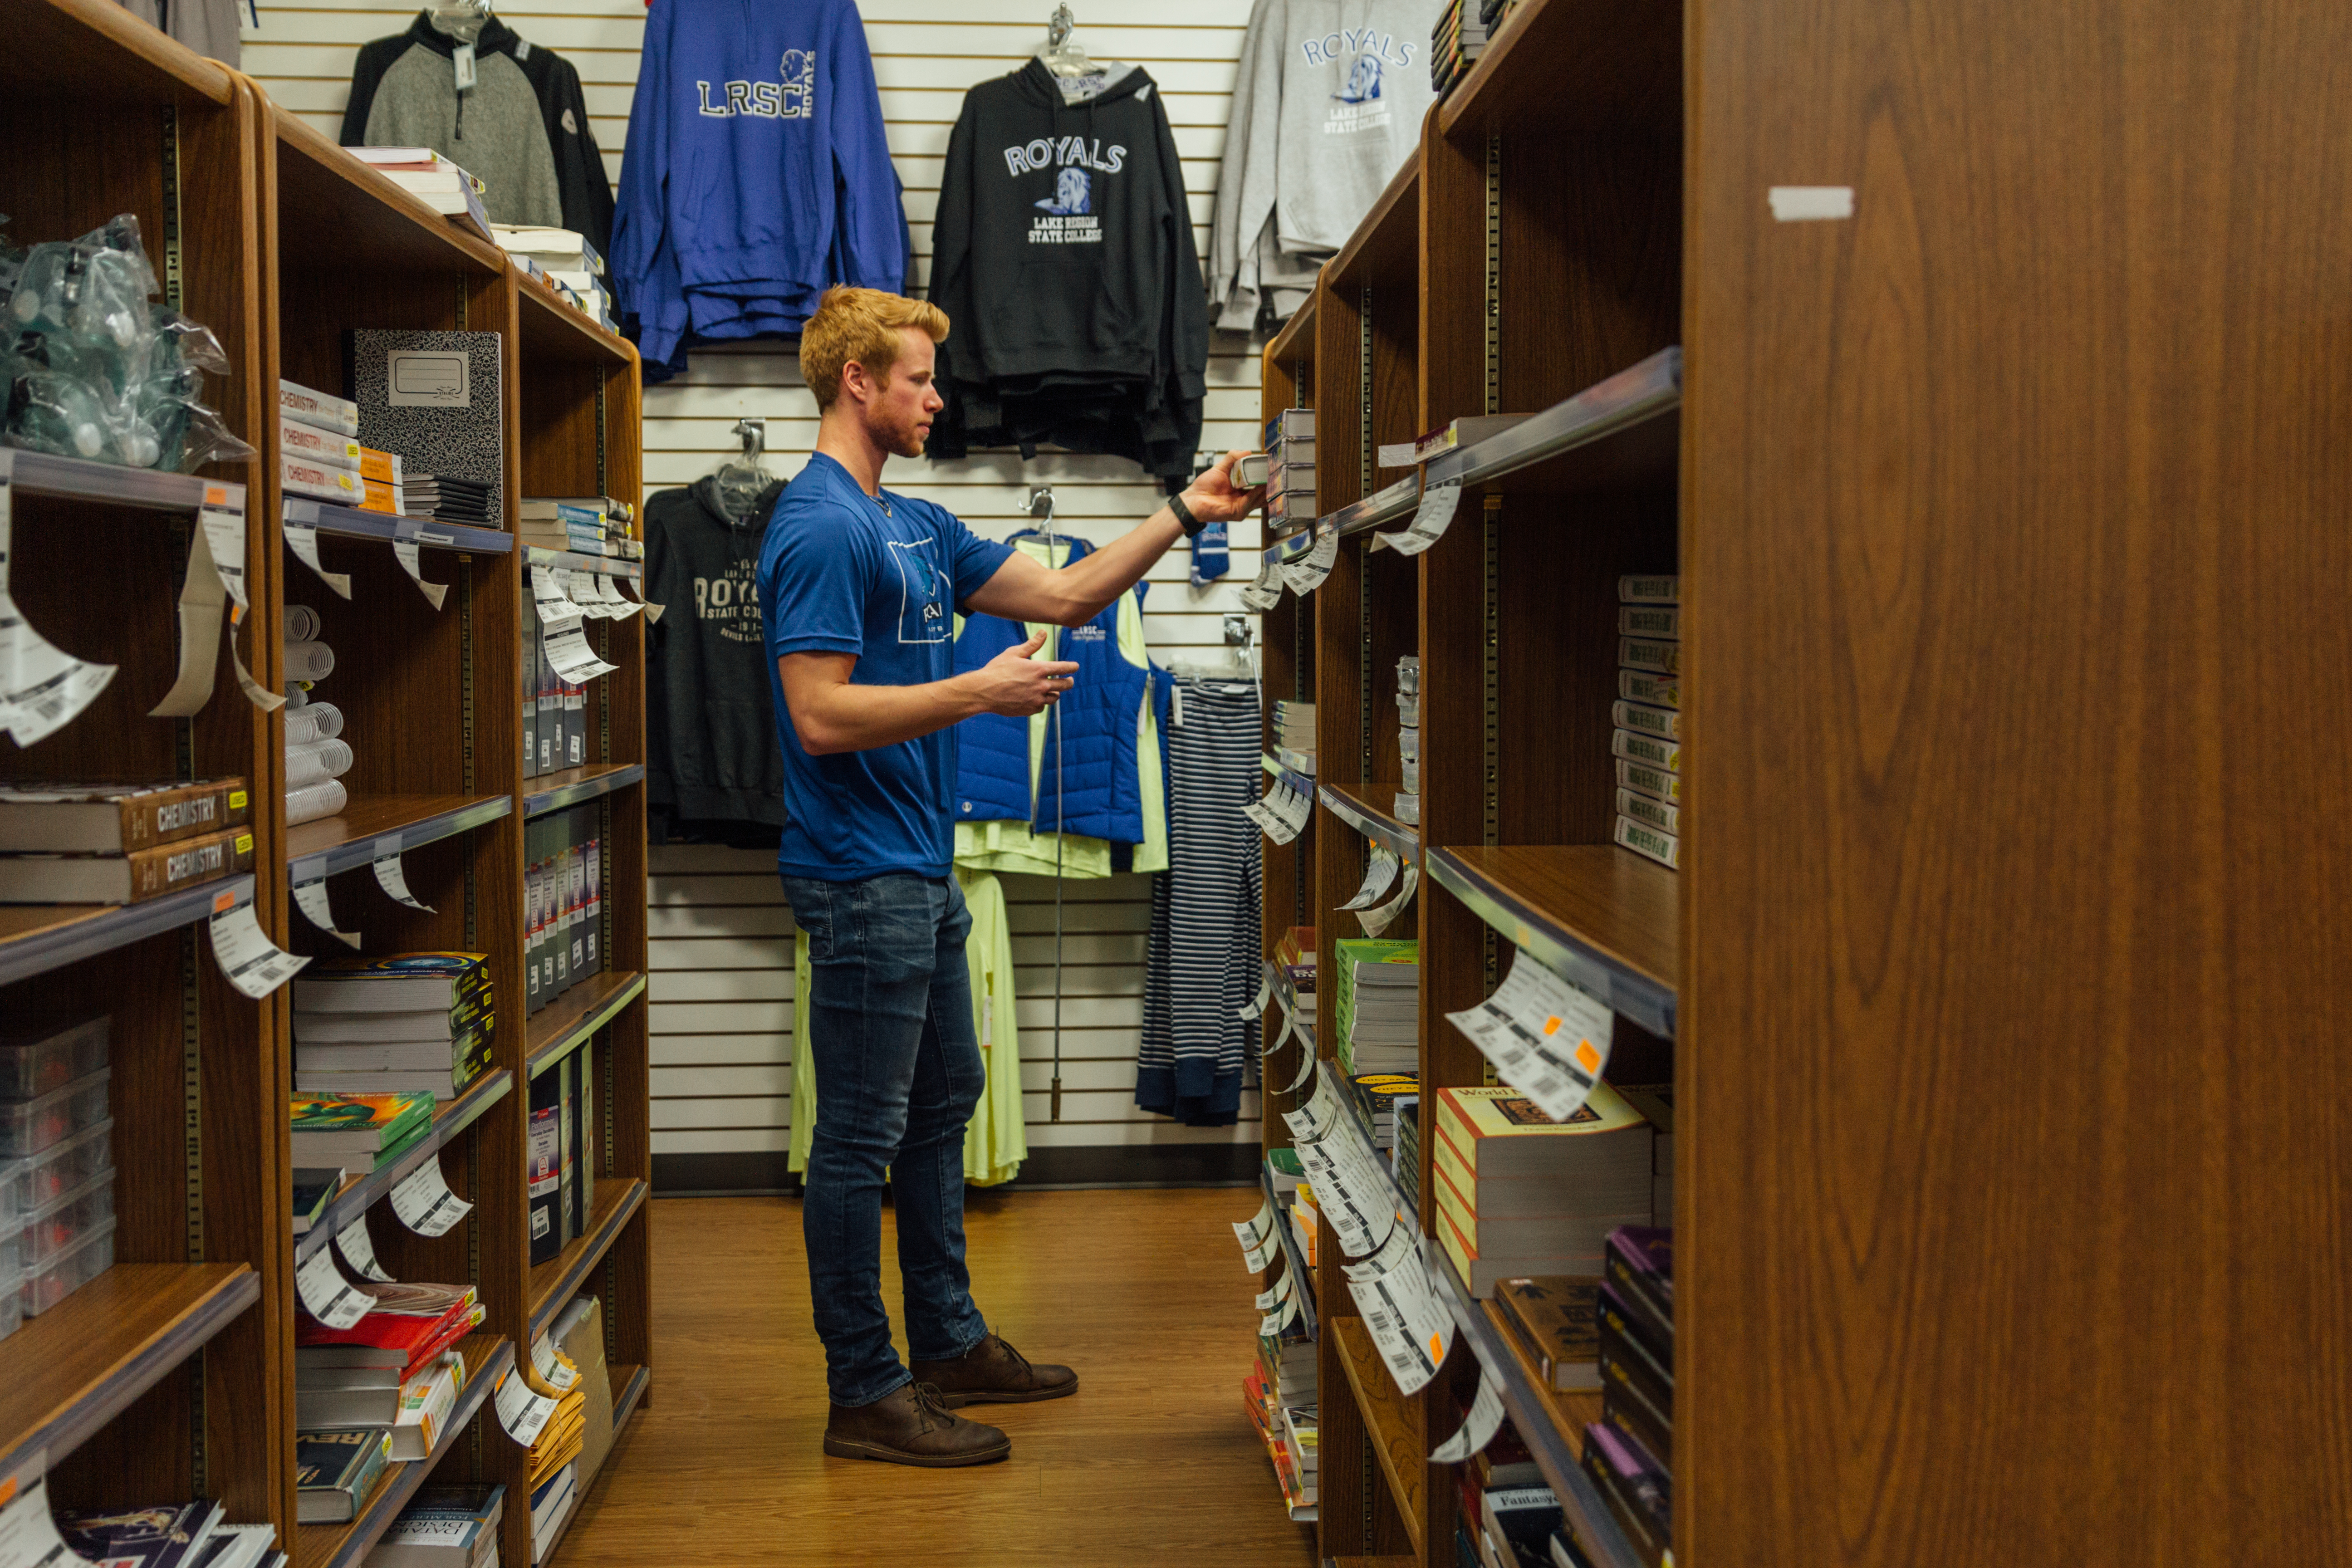 Male student standing near textbooks in Bookstore